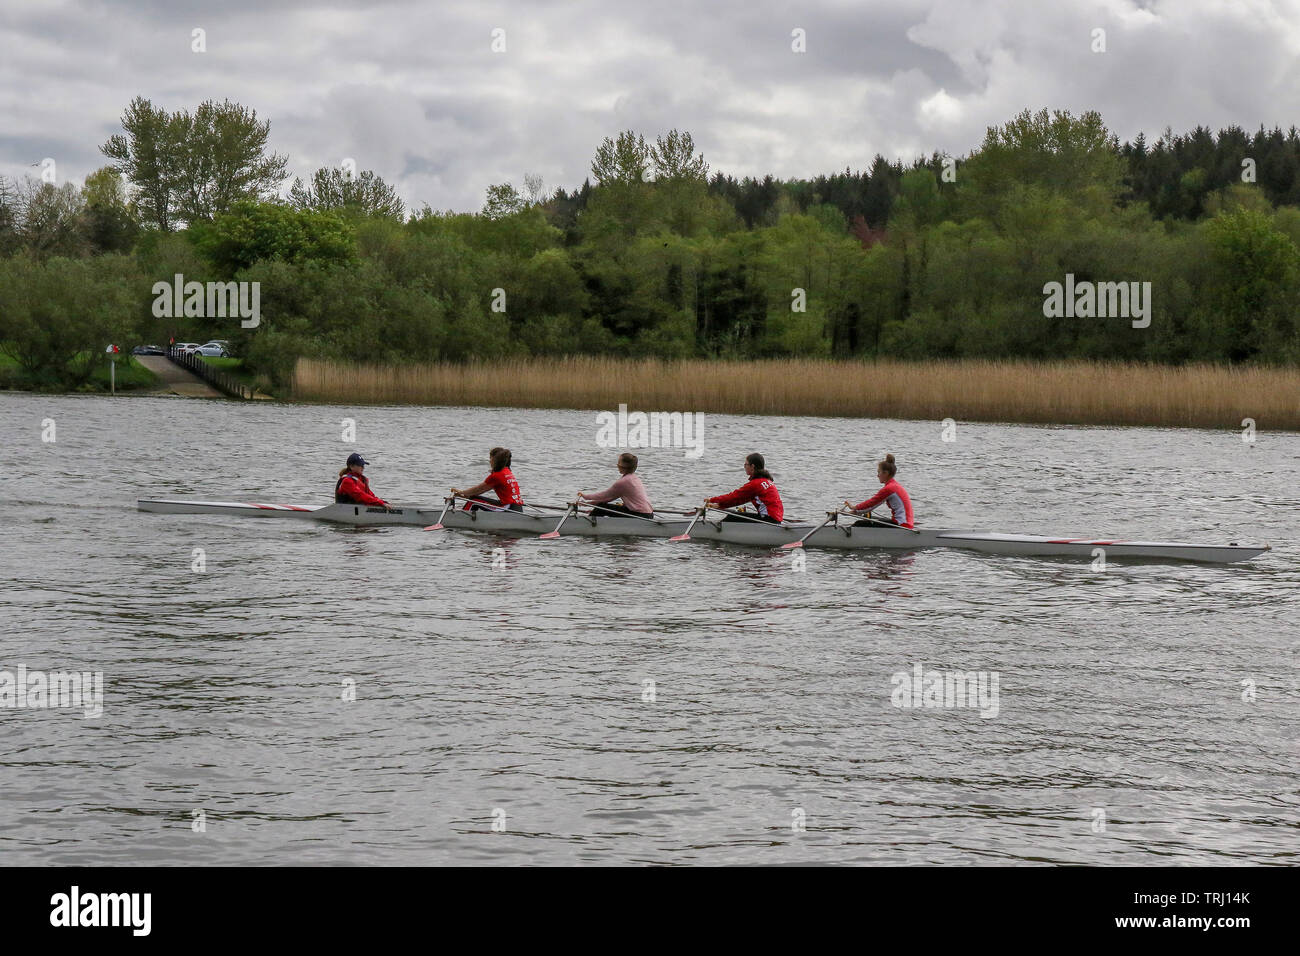 Women rowing on the River Bann at Coleraine in Northern Ireland. - Stock Image